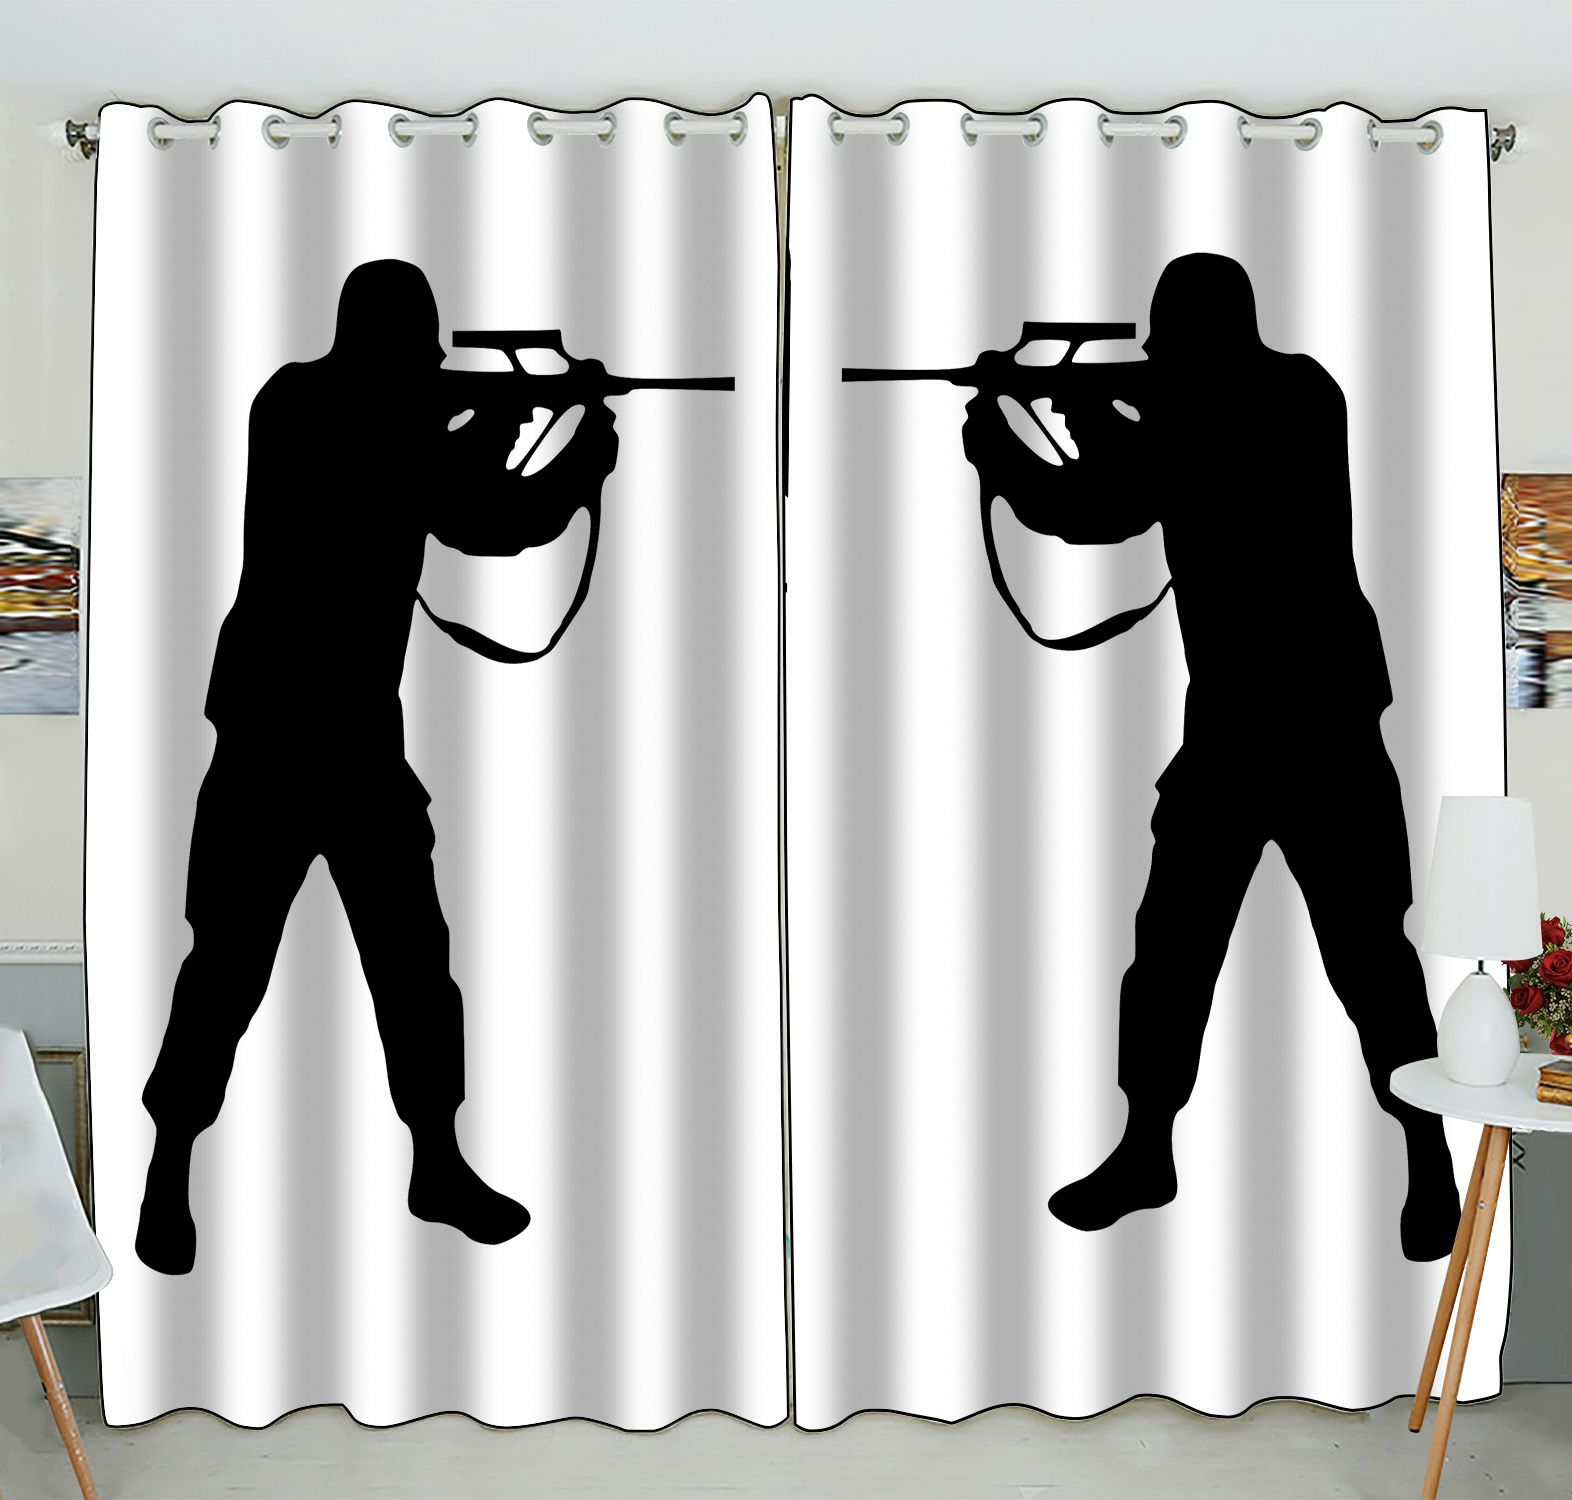 ZKGK Soldier Silhouettes Window Curtain Drapery/Panels/Treatment For Living Room Bedroom Kids Rooms 52x84 inches Two Panel